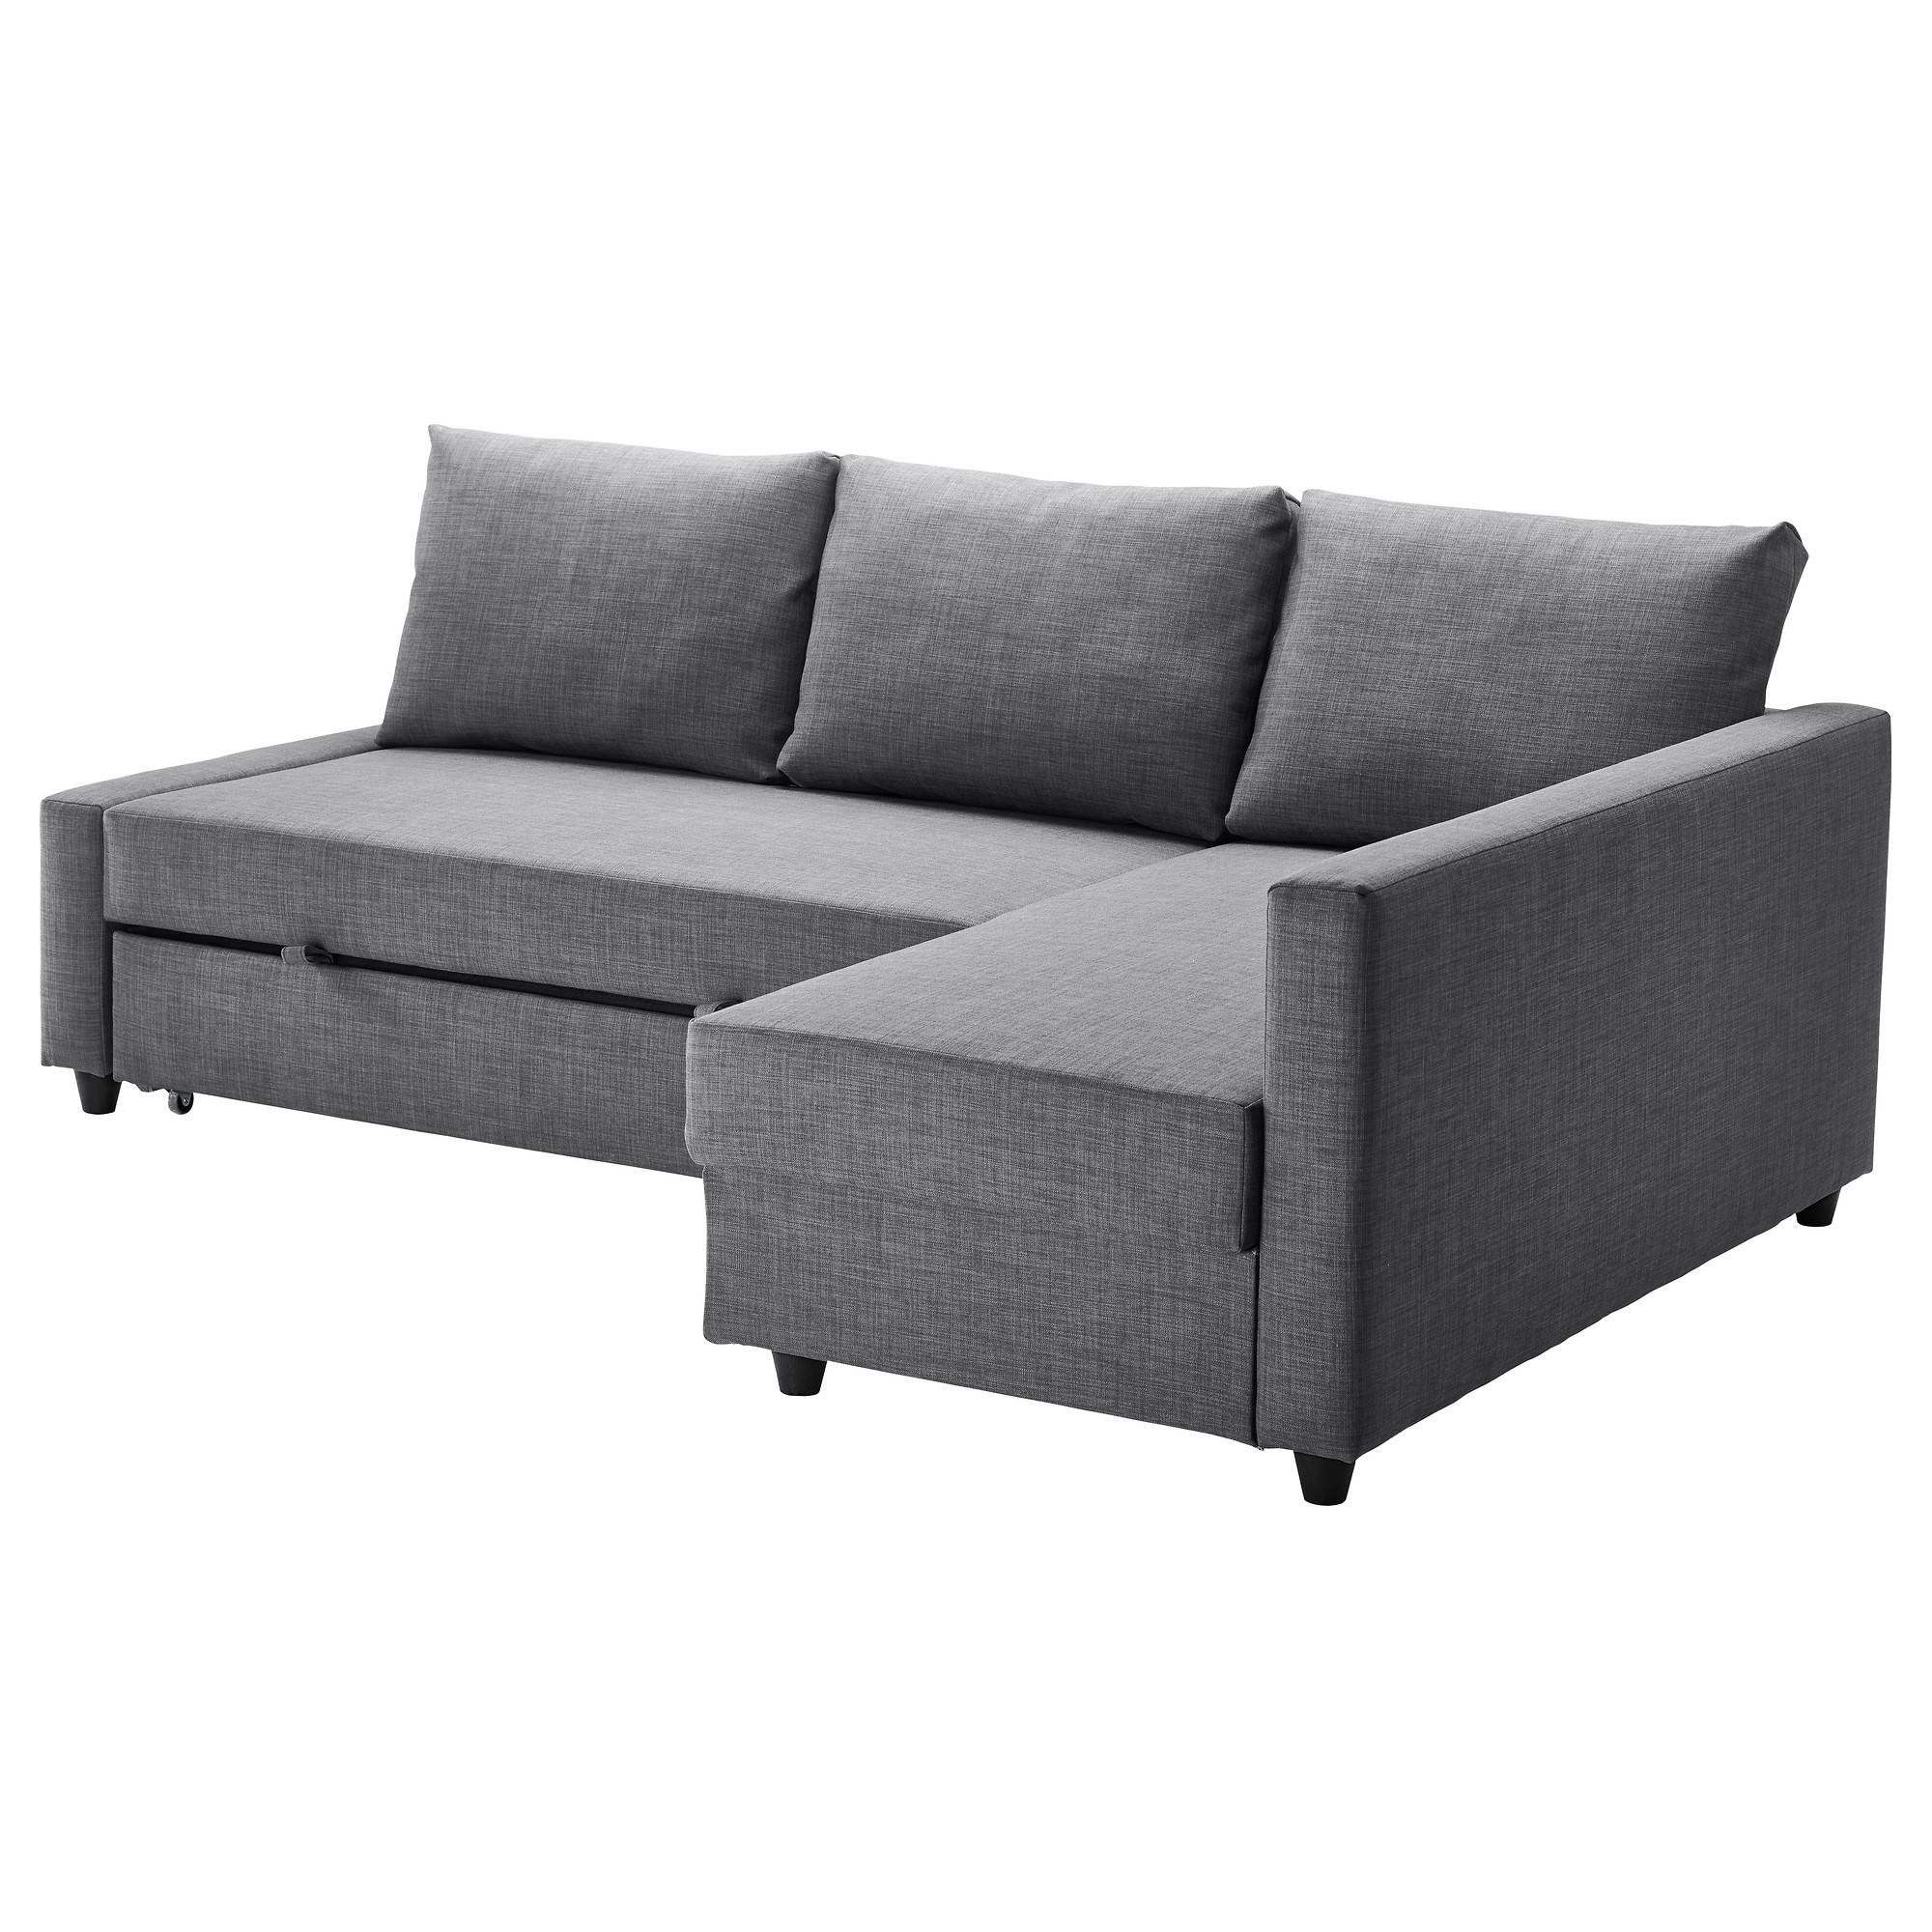 Sofa Beds & Futons – Ikea For Sleeper Sofa Sectional Ikea (View 19 of 25)